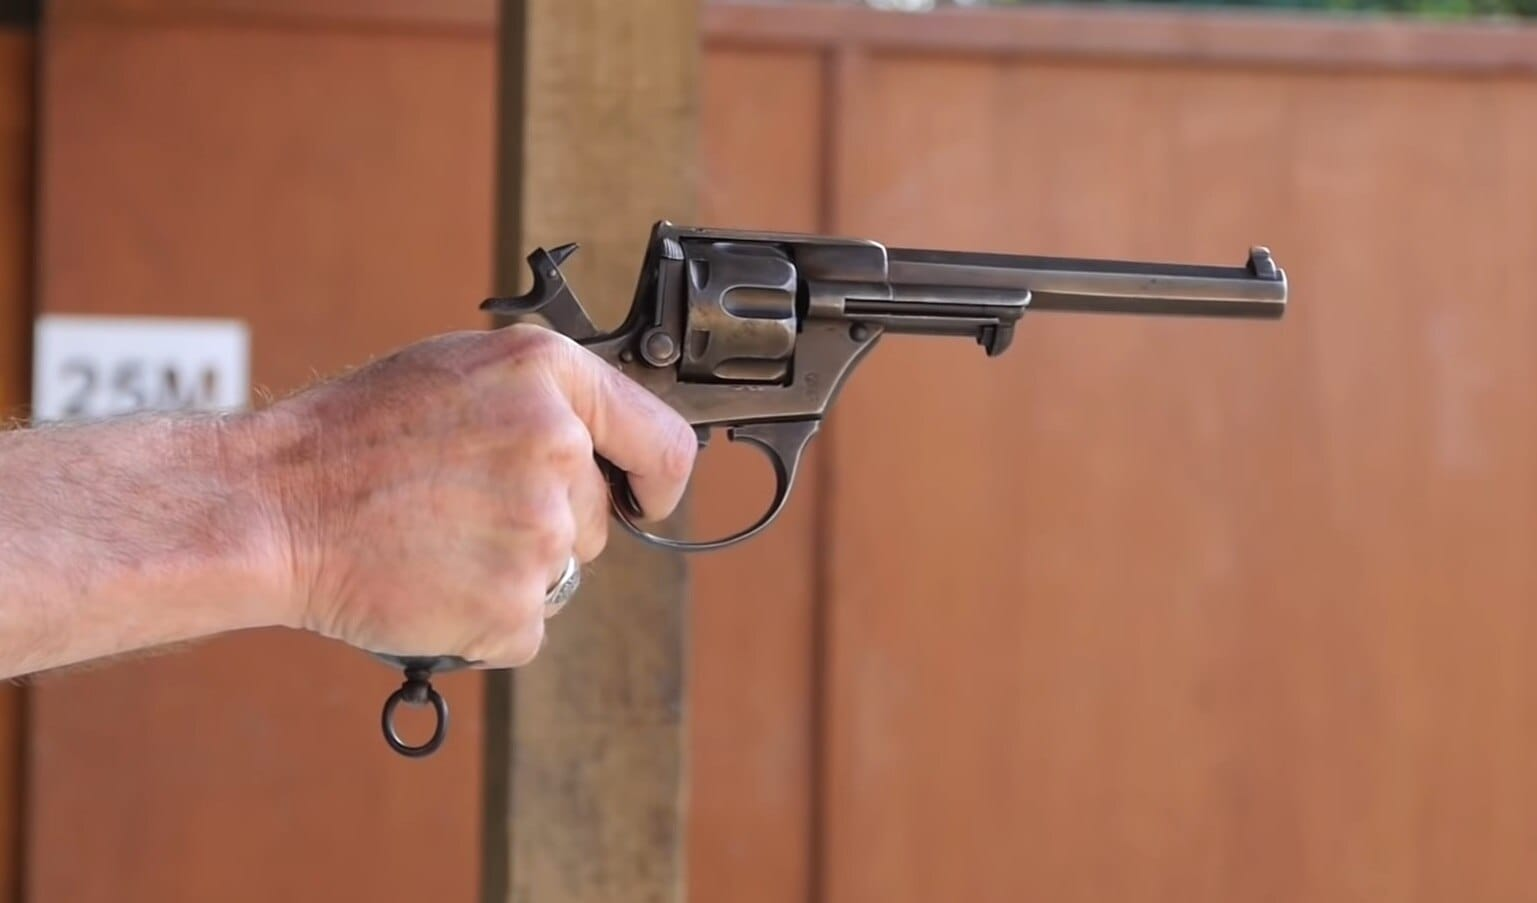 If You Want to See Over 50 Different WWI Guns in Action, This is for You (VIDEO)